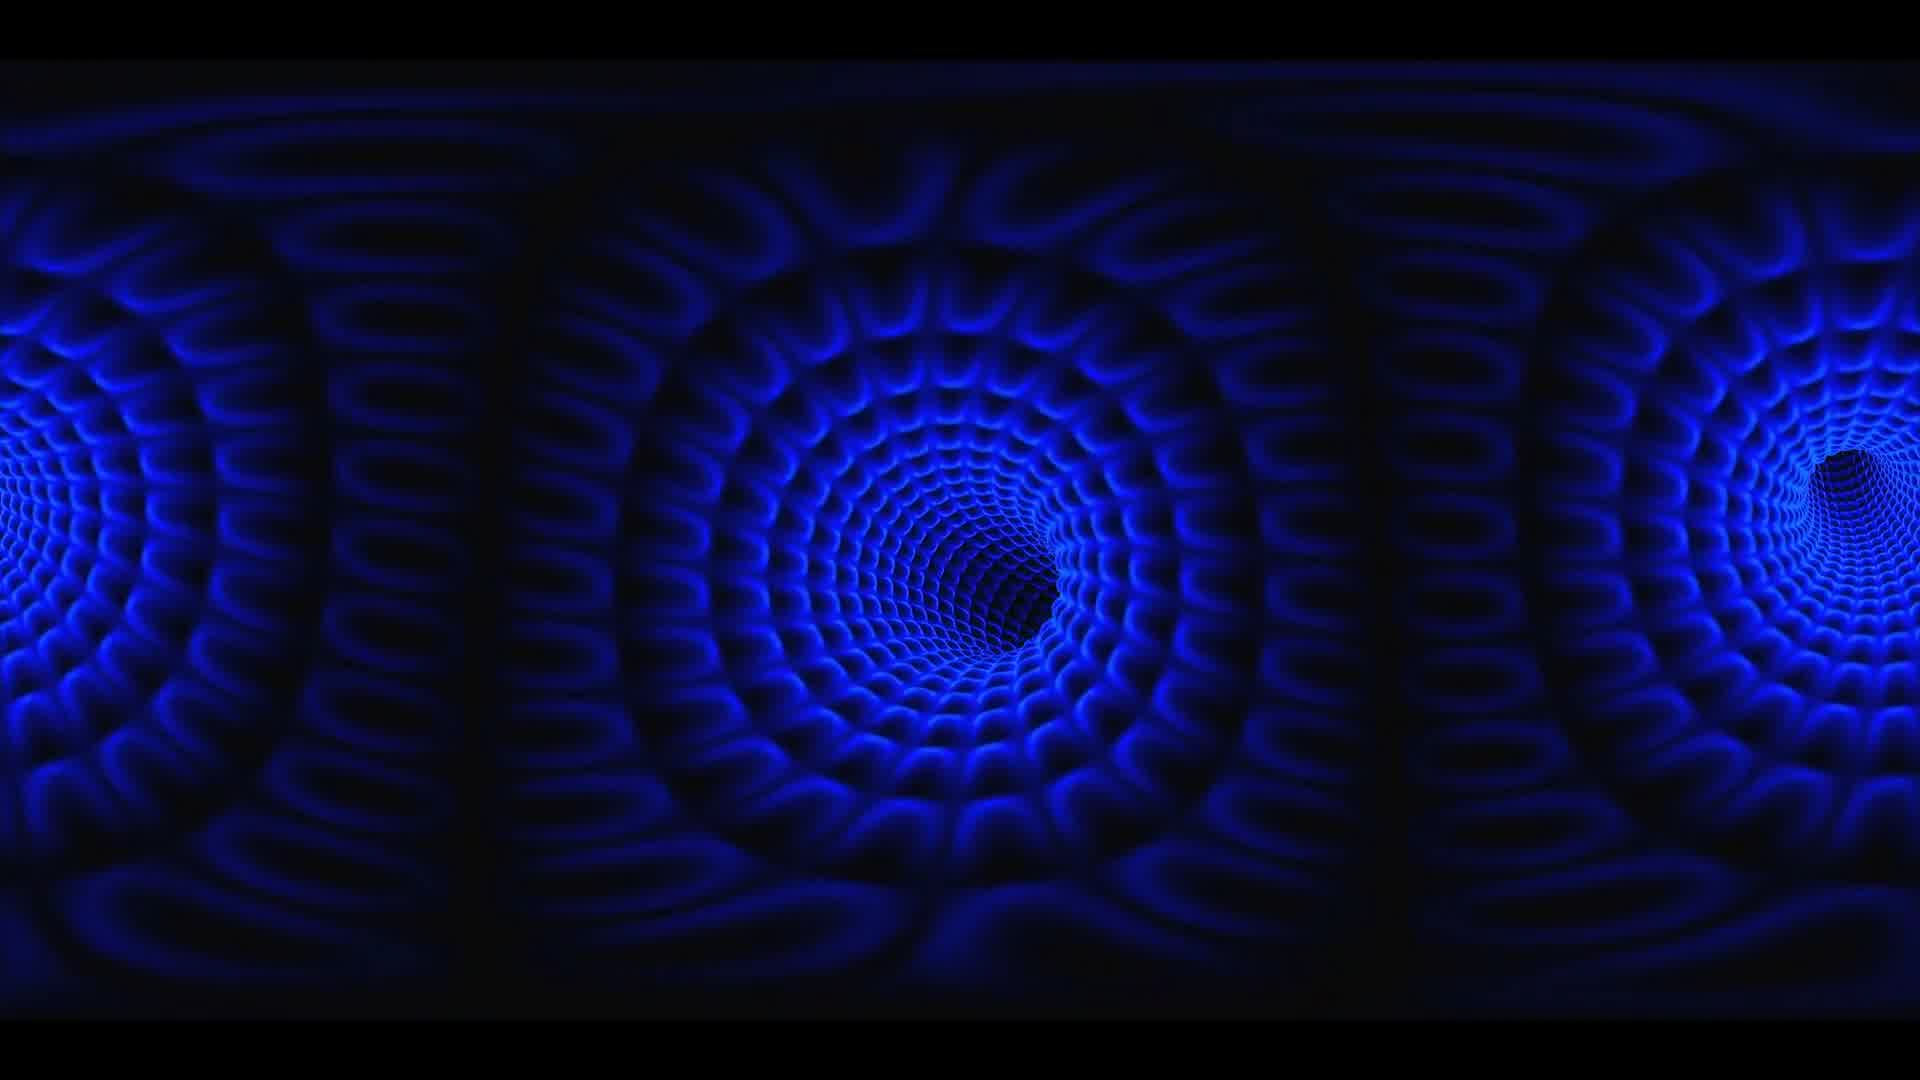 loop VR 360 colorfull wormhole. Warp straight ahead through this science fiction wormhole. virtual reality